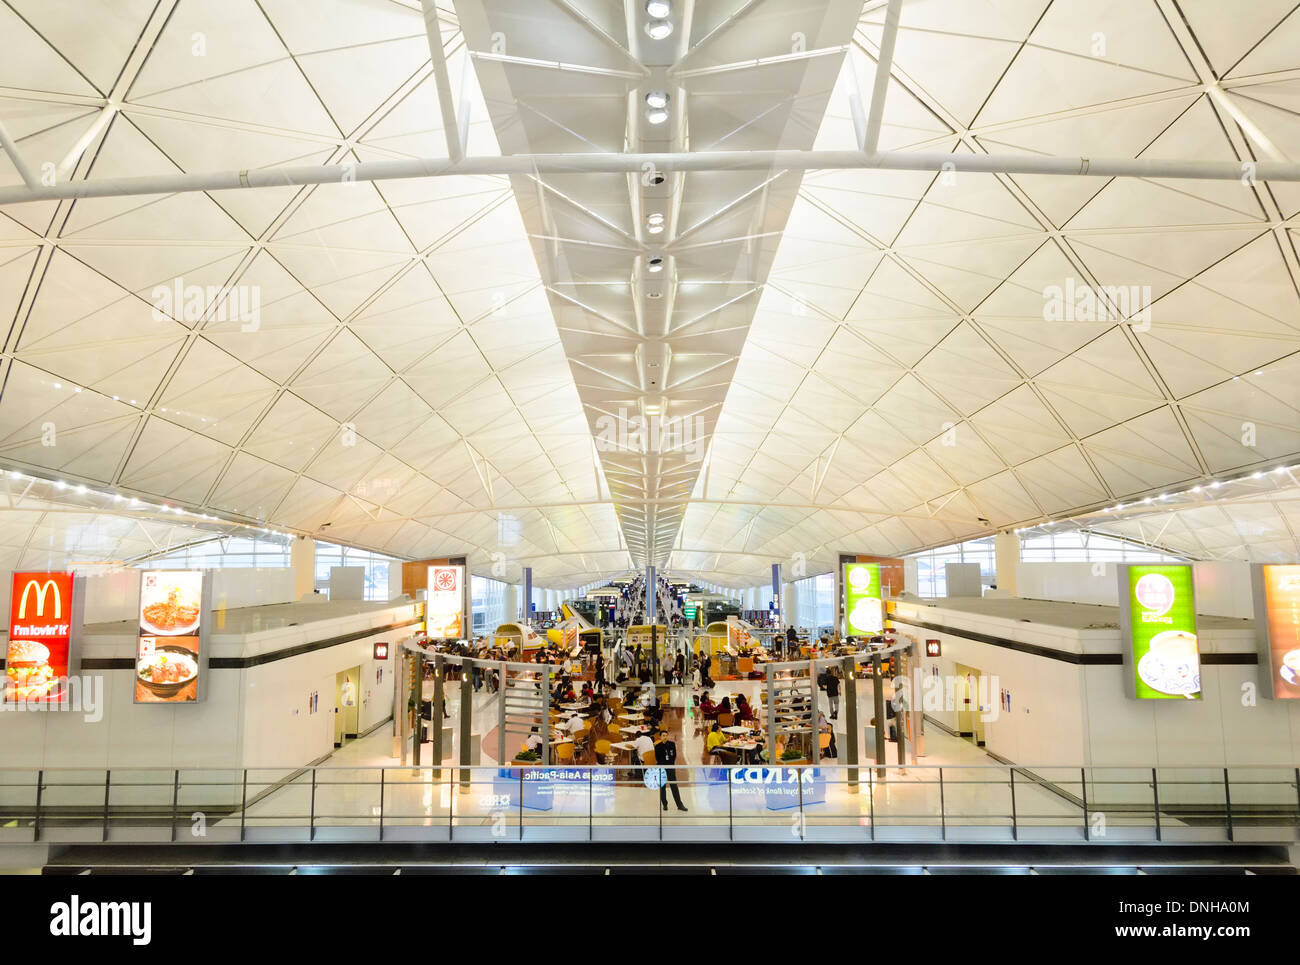 Modern international contemporary airport passenger concourse building ceiling / roof: Hong Kong International Airport. - Stock Image